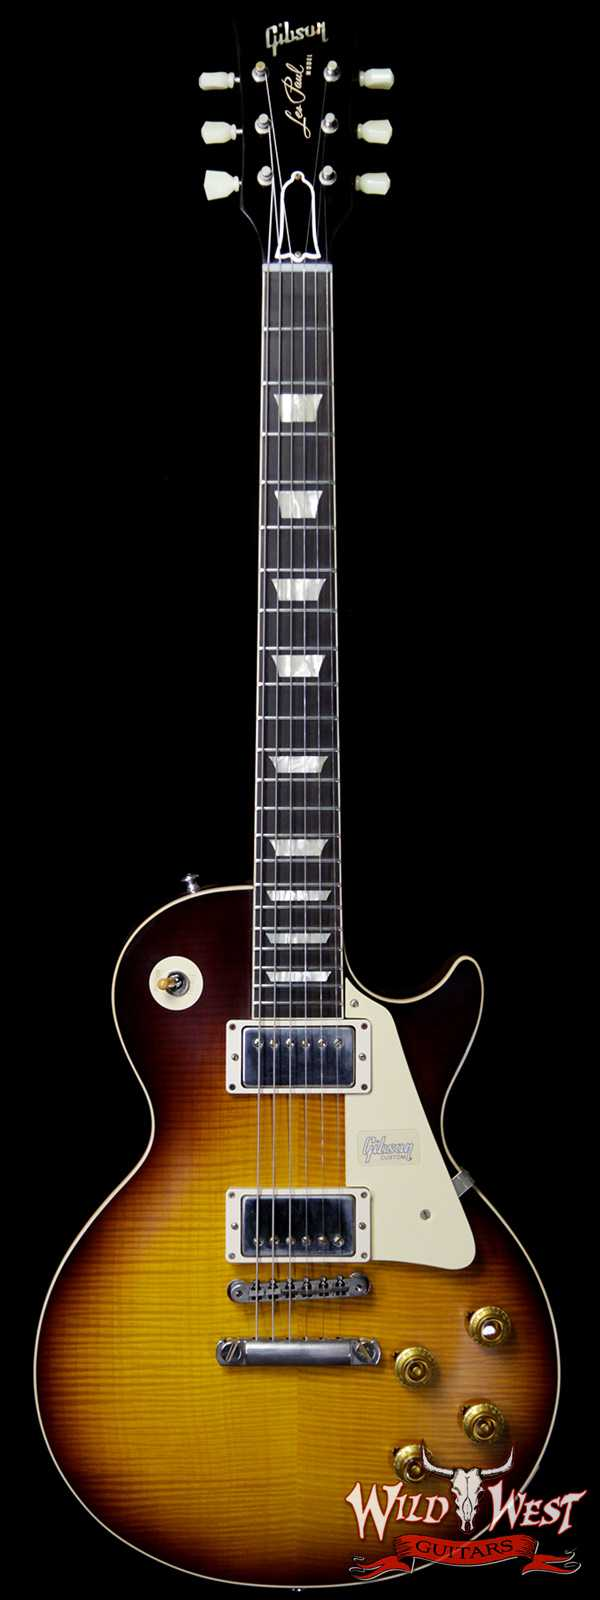 Gibson Custom Shop 60th Anniversary 1959 Les Paul Standard VOS Bolivian Rosewood Fretboard Kindred Burst 8.65 lbs